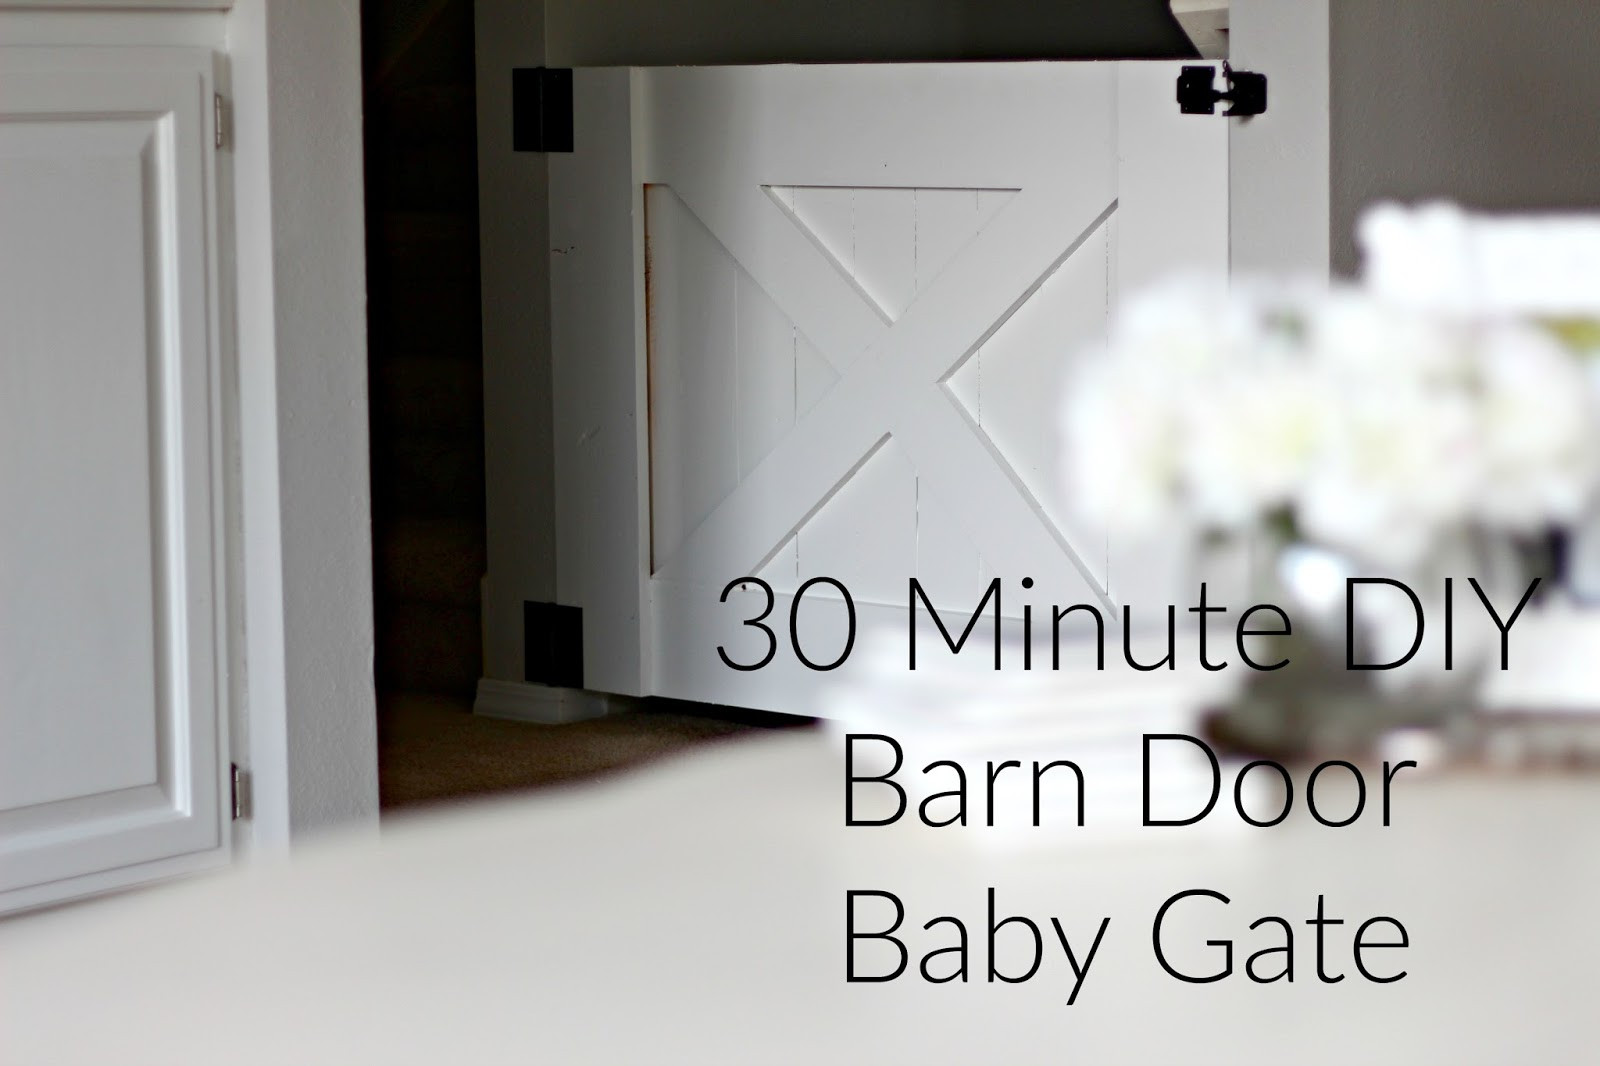 Best ideas about DIY Barn Door Baby Gate . Save or Pin Rose & Co Blog 30 Minute DIY Barn Door Baby Gate Now.